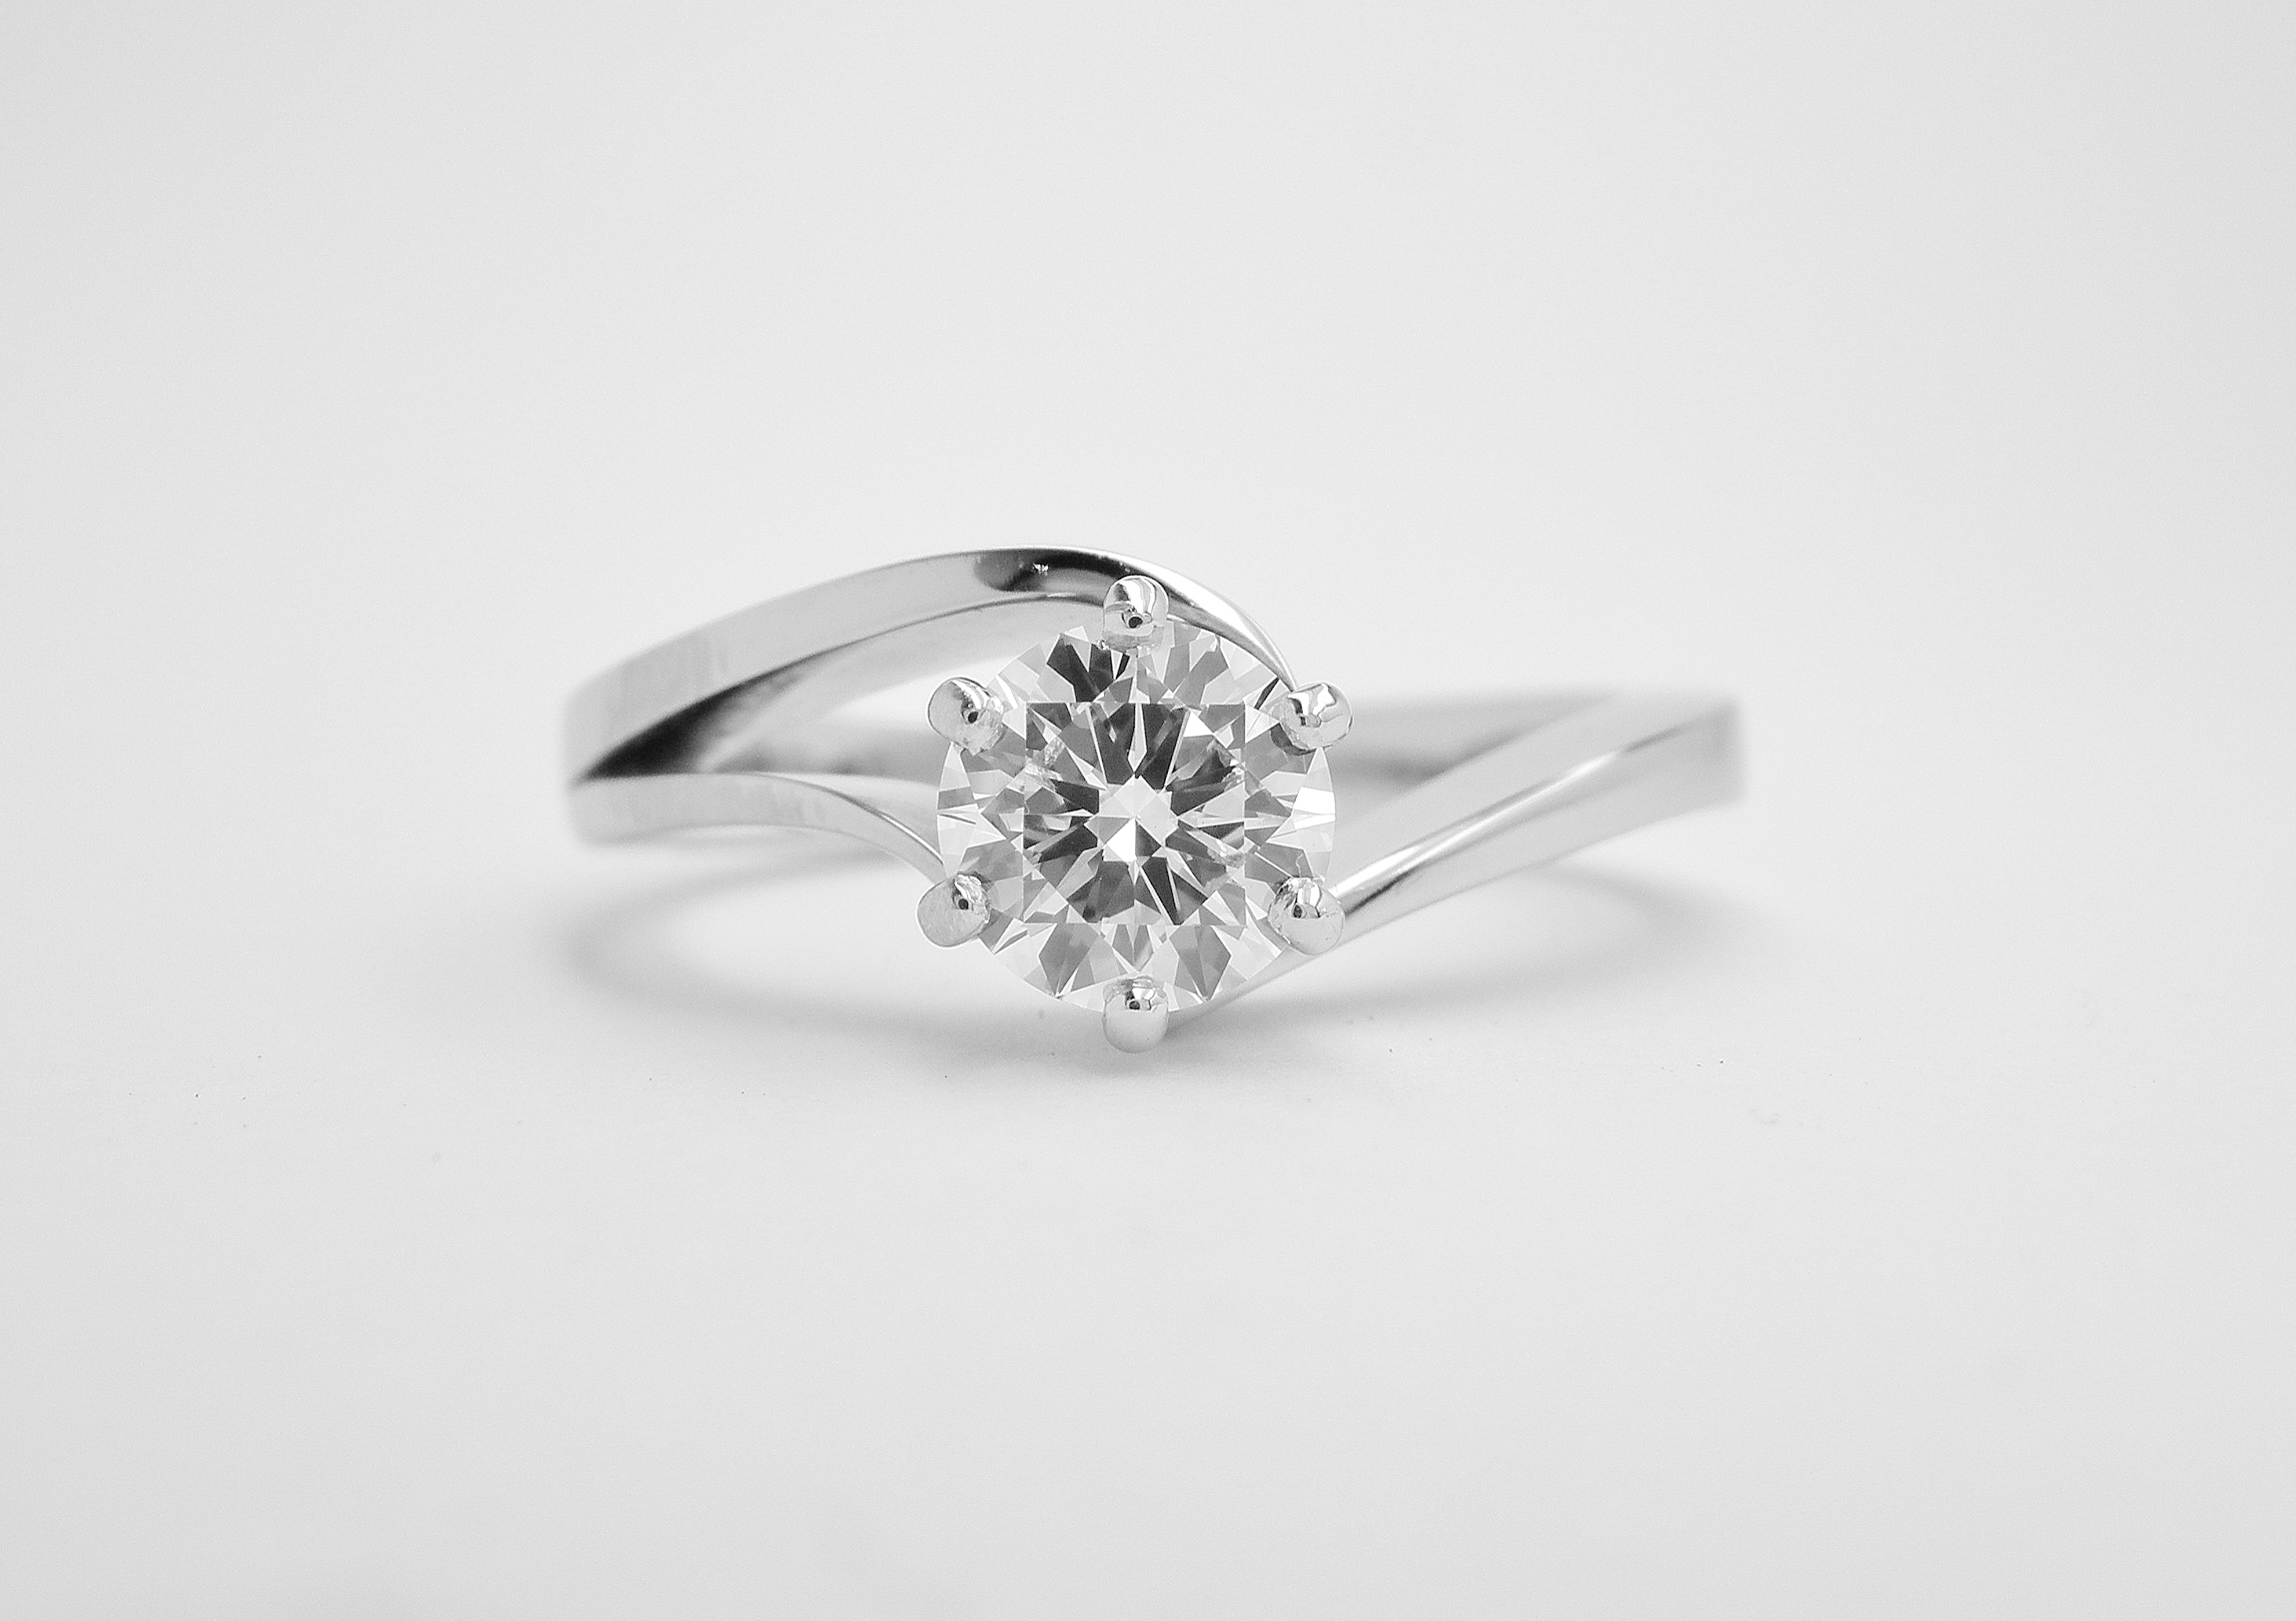 0.50ct. round brilliant cut diamond open shouldered wishbone cross-over ring. Ideal diamond sizes from 0.35ct. to 1.50ct.